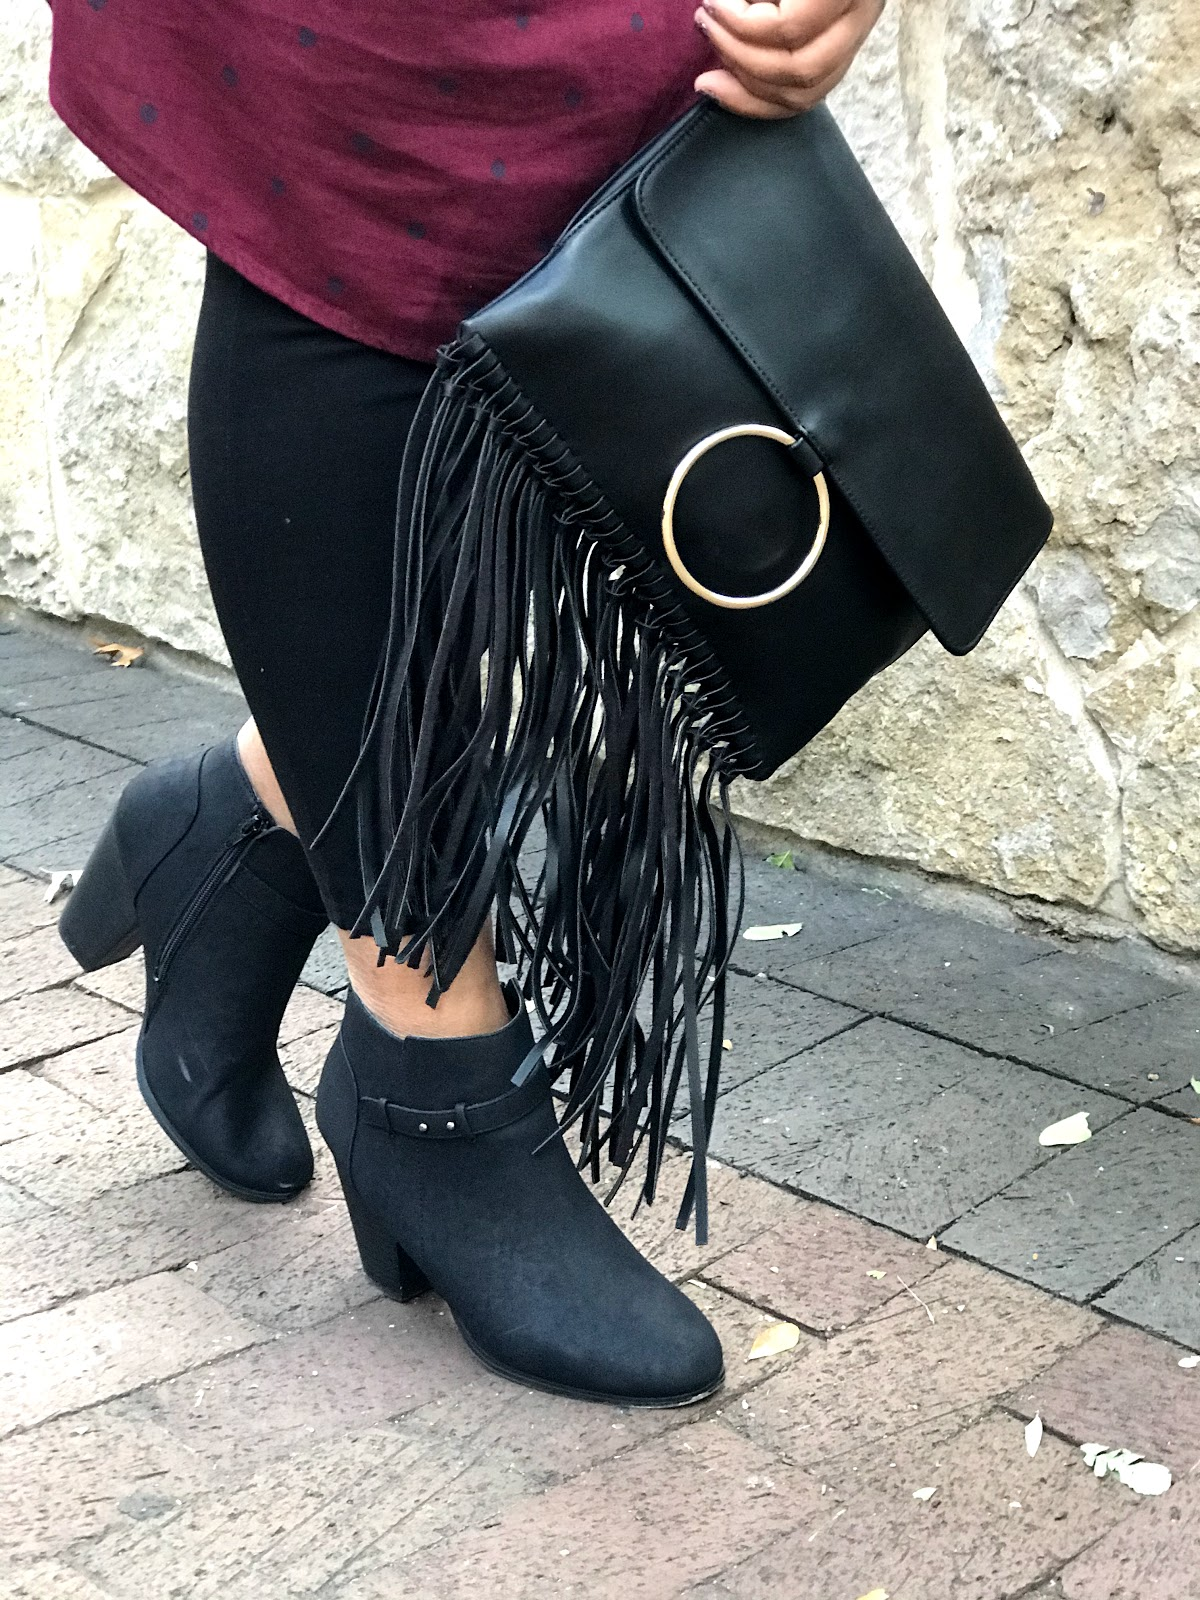 Tangie Bell is sharing how she restyled old boots and handbags